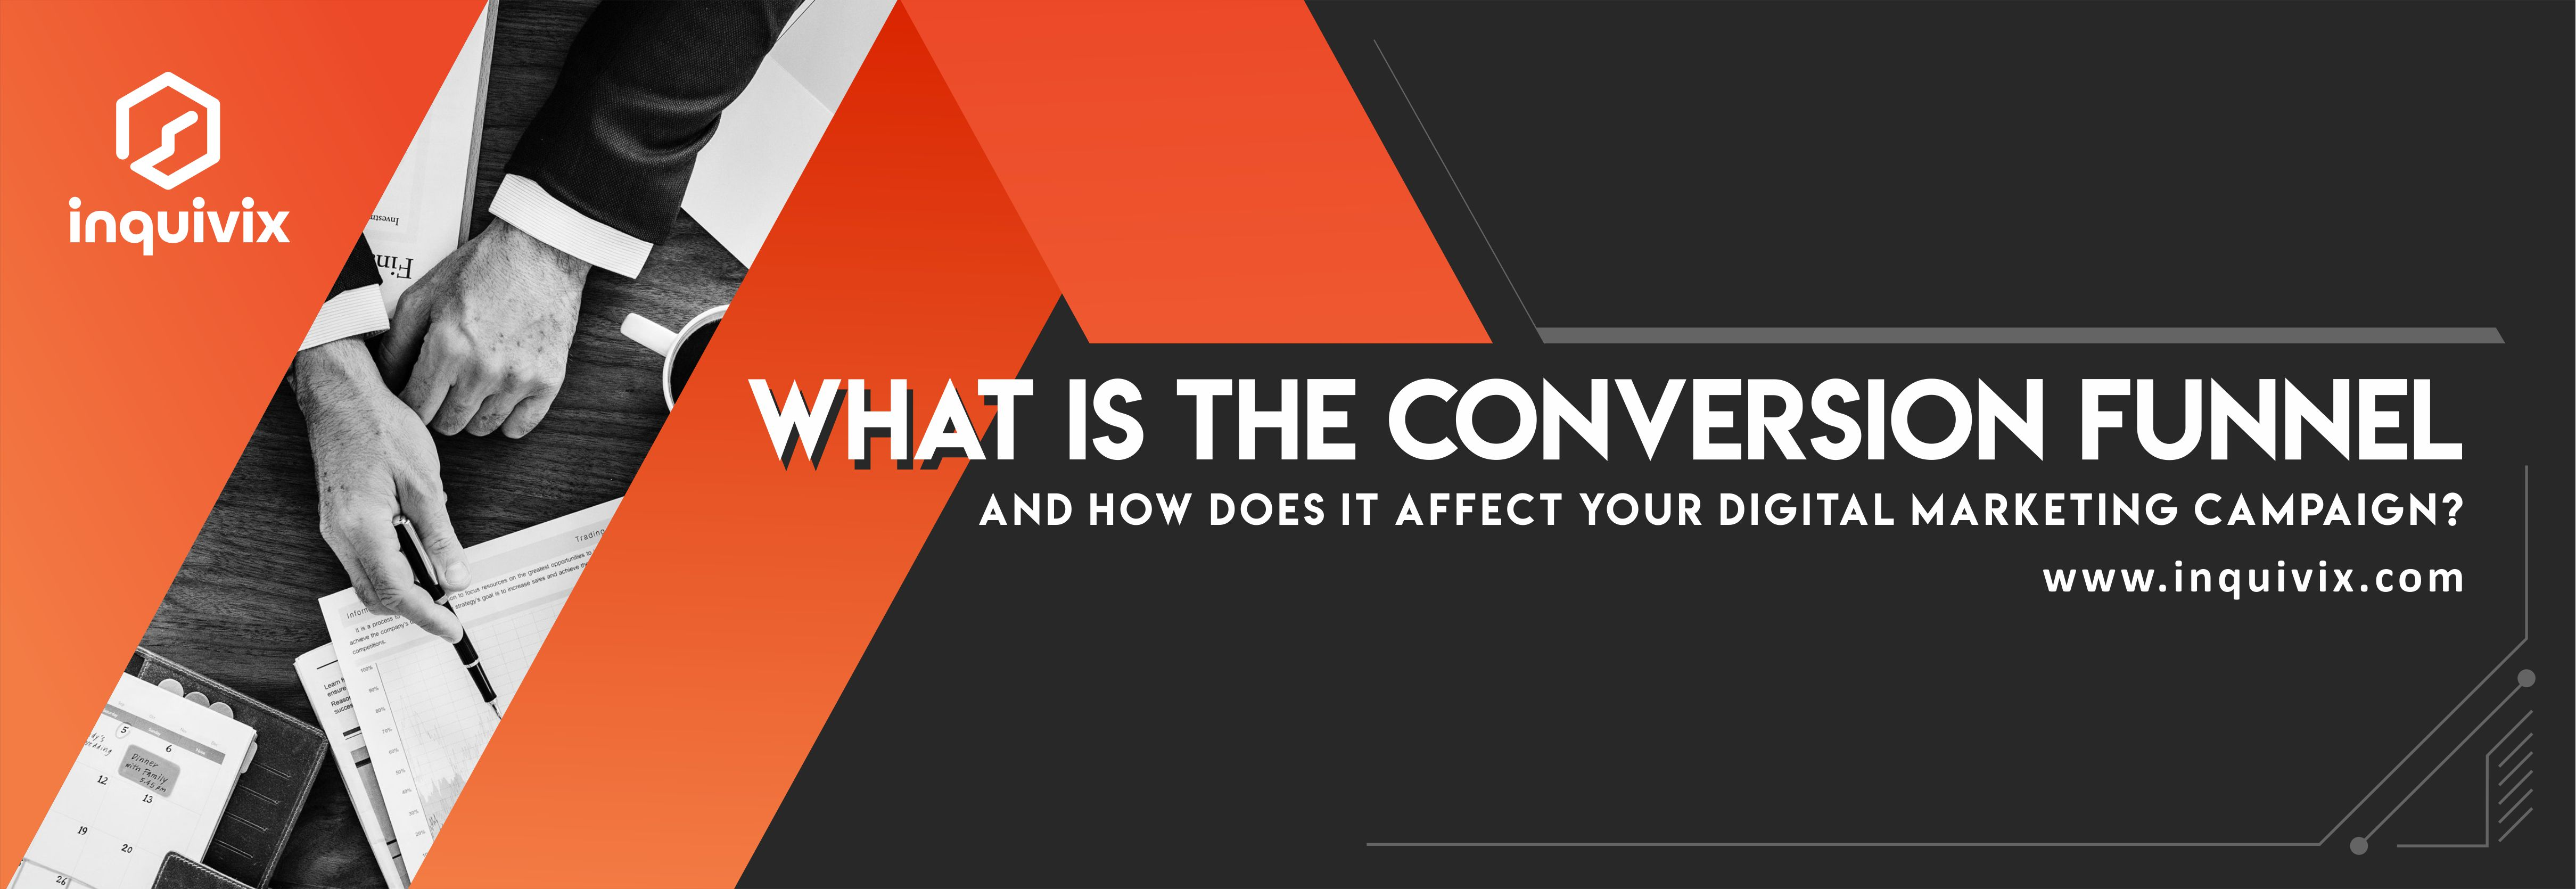 What is the conversion funnel and how does it affect your digital marketing campaign?